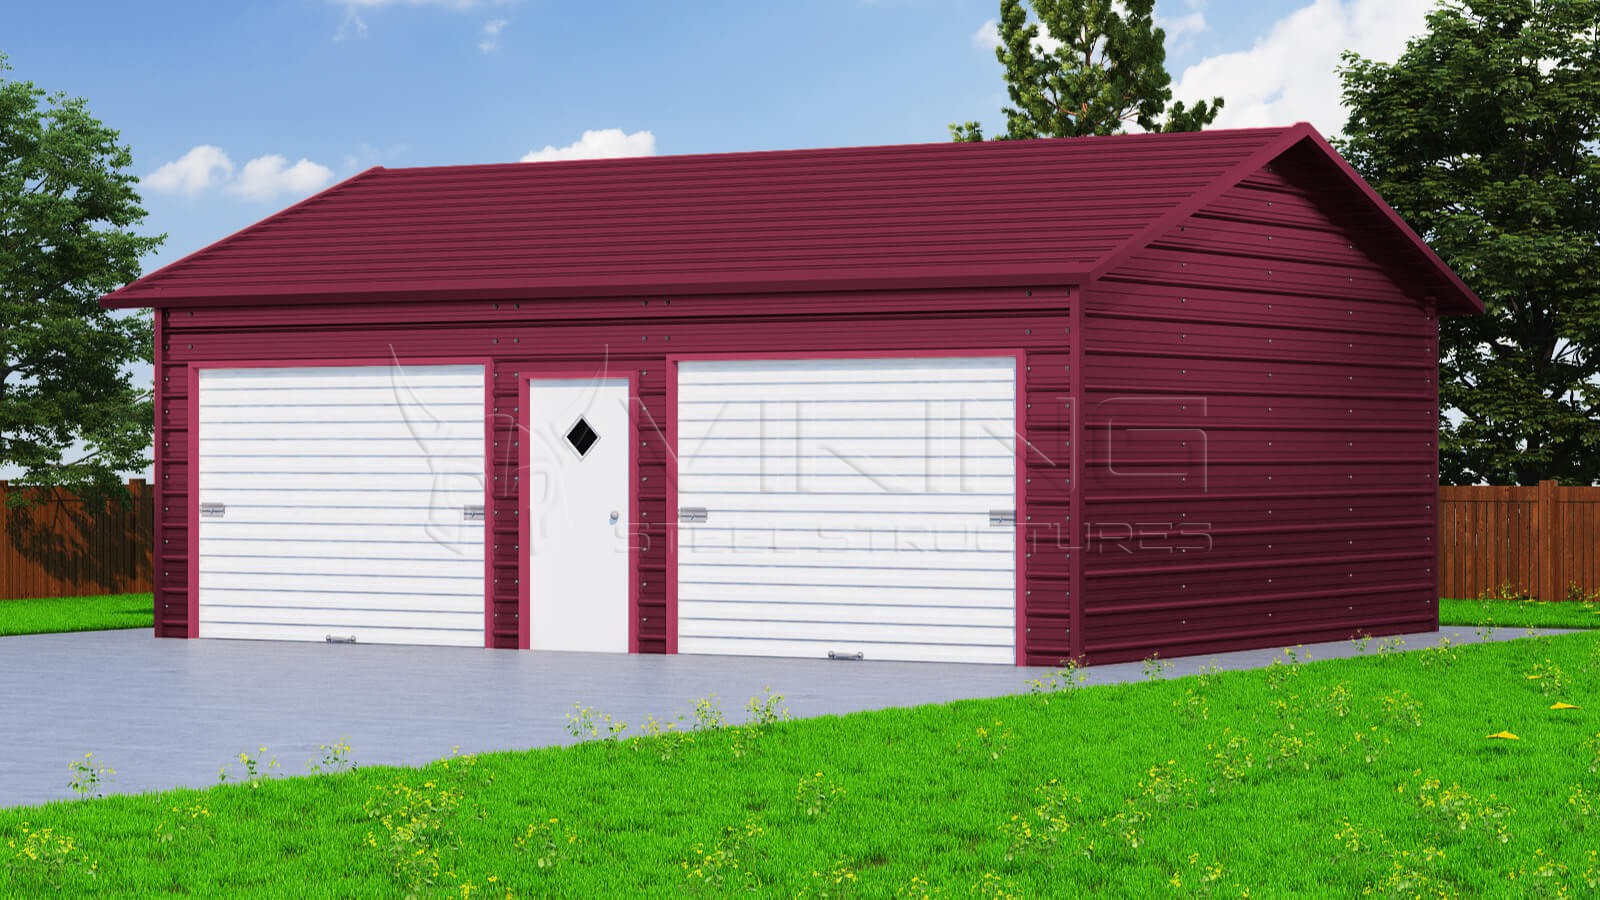 Unique Uses of Metal Garage Sheds